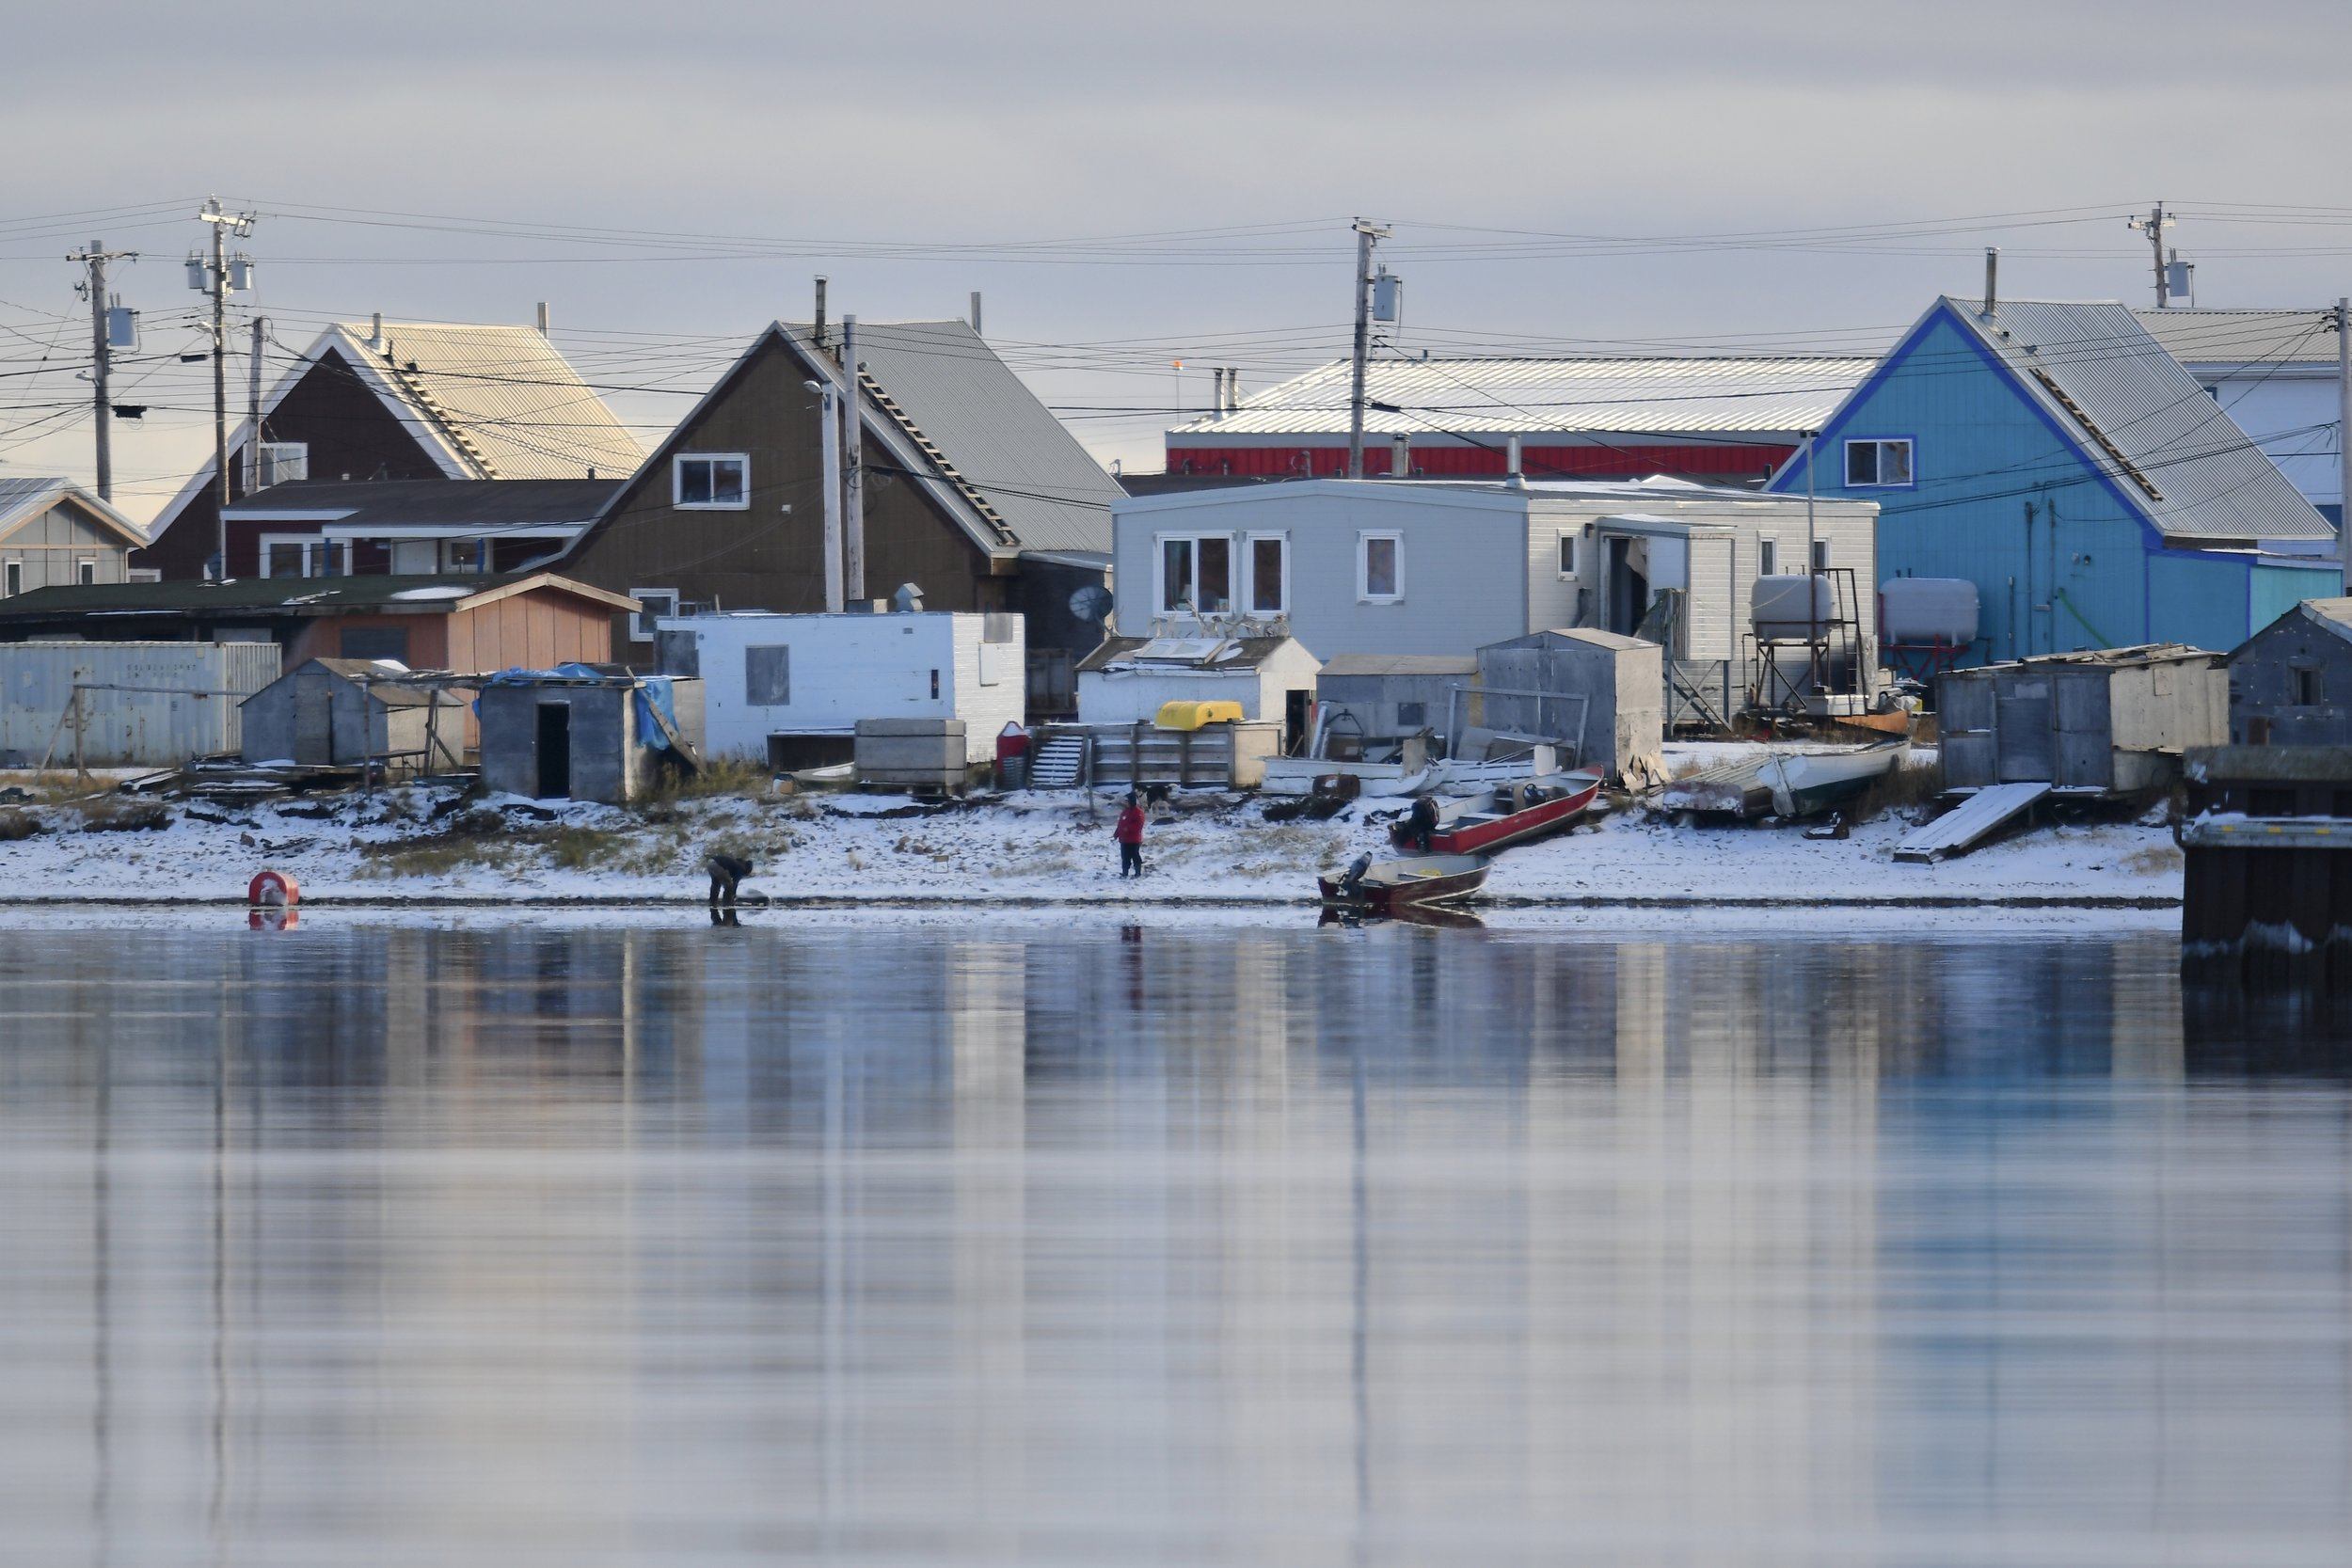 A small town by the Arctic Ocean.